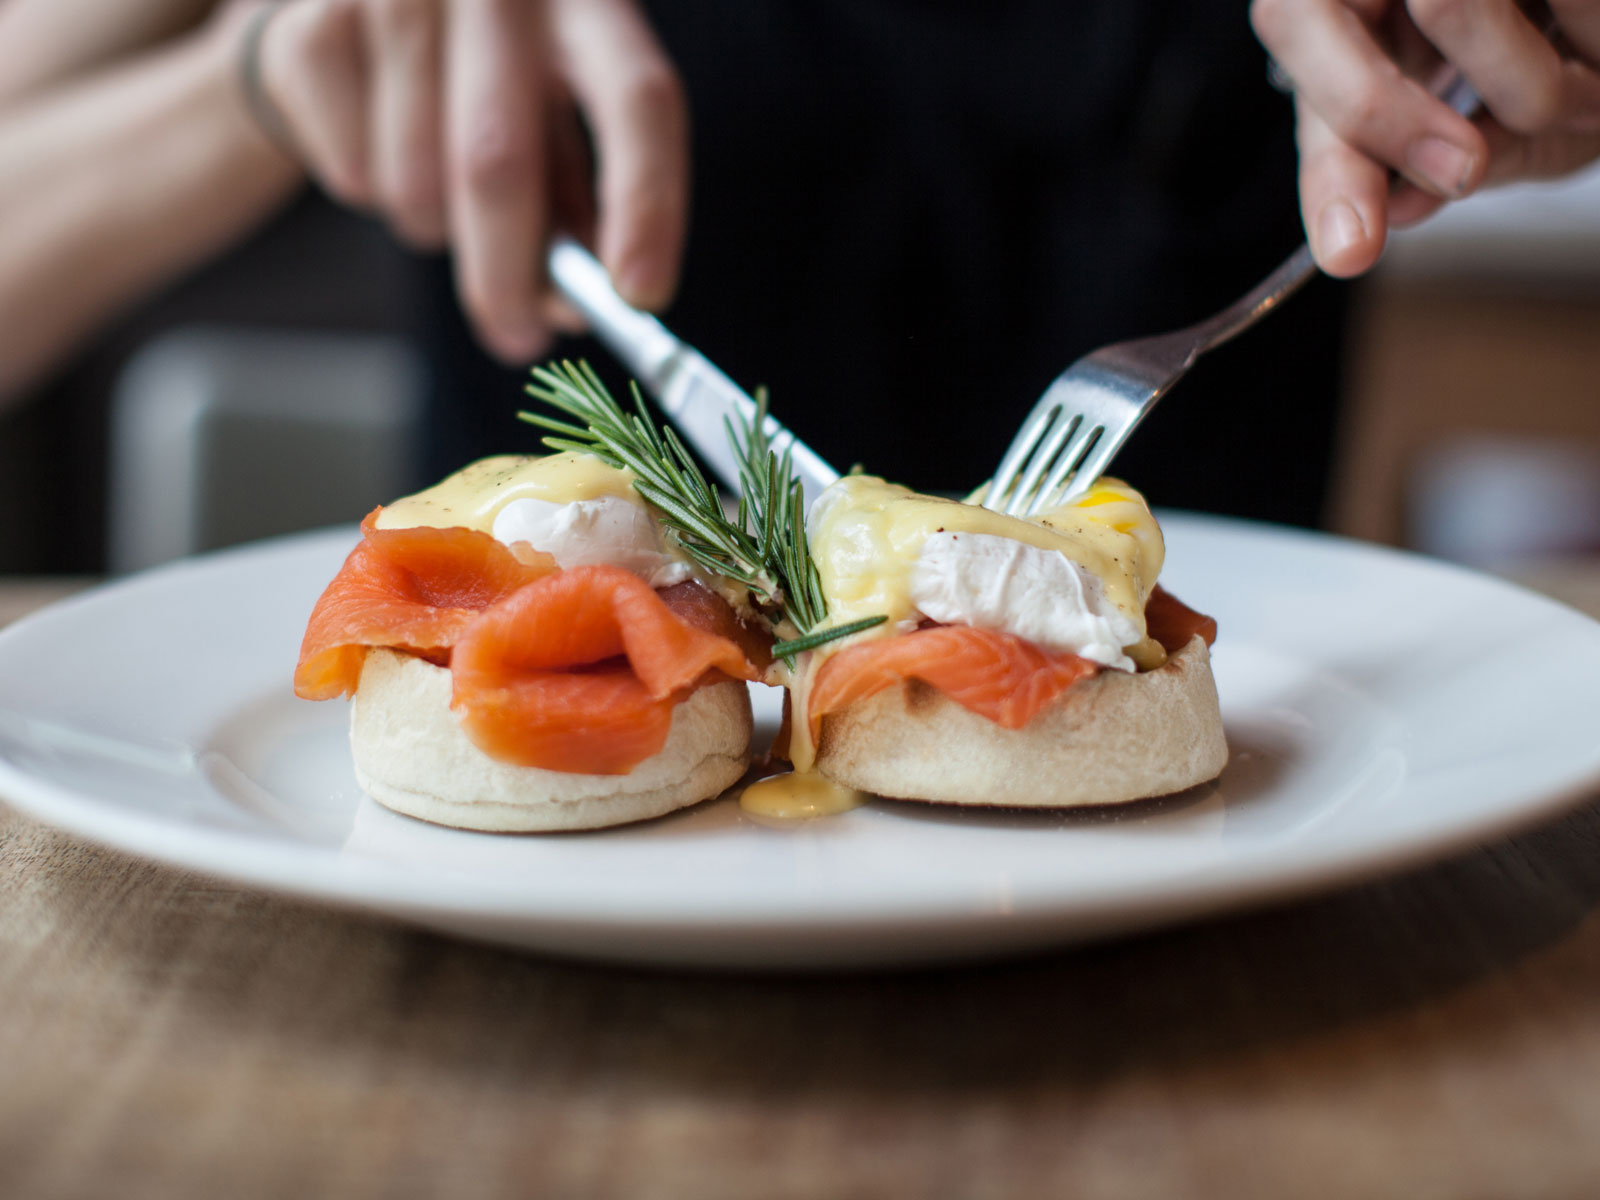 The 100 Best Brunch Spots in the U.S., According to OpenTable Users